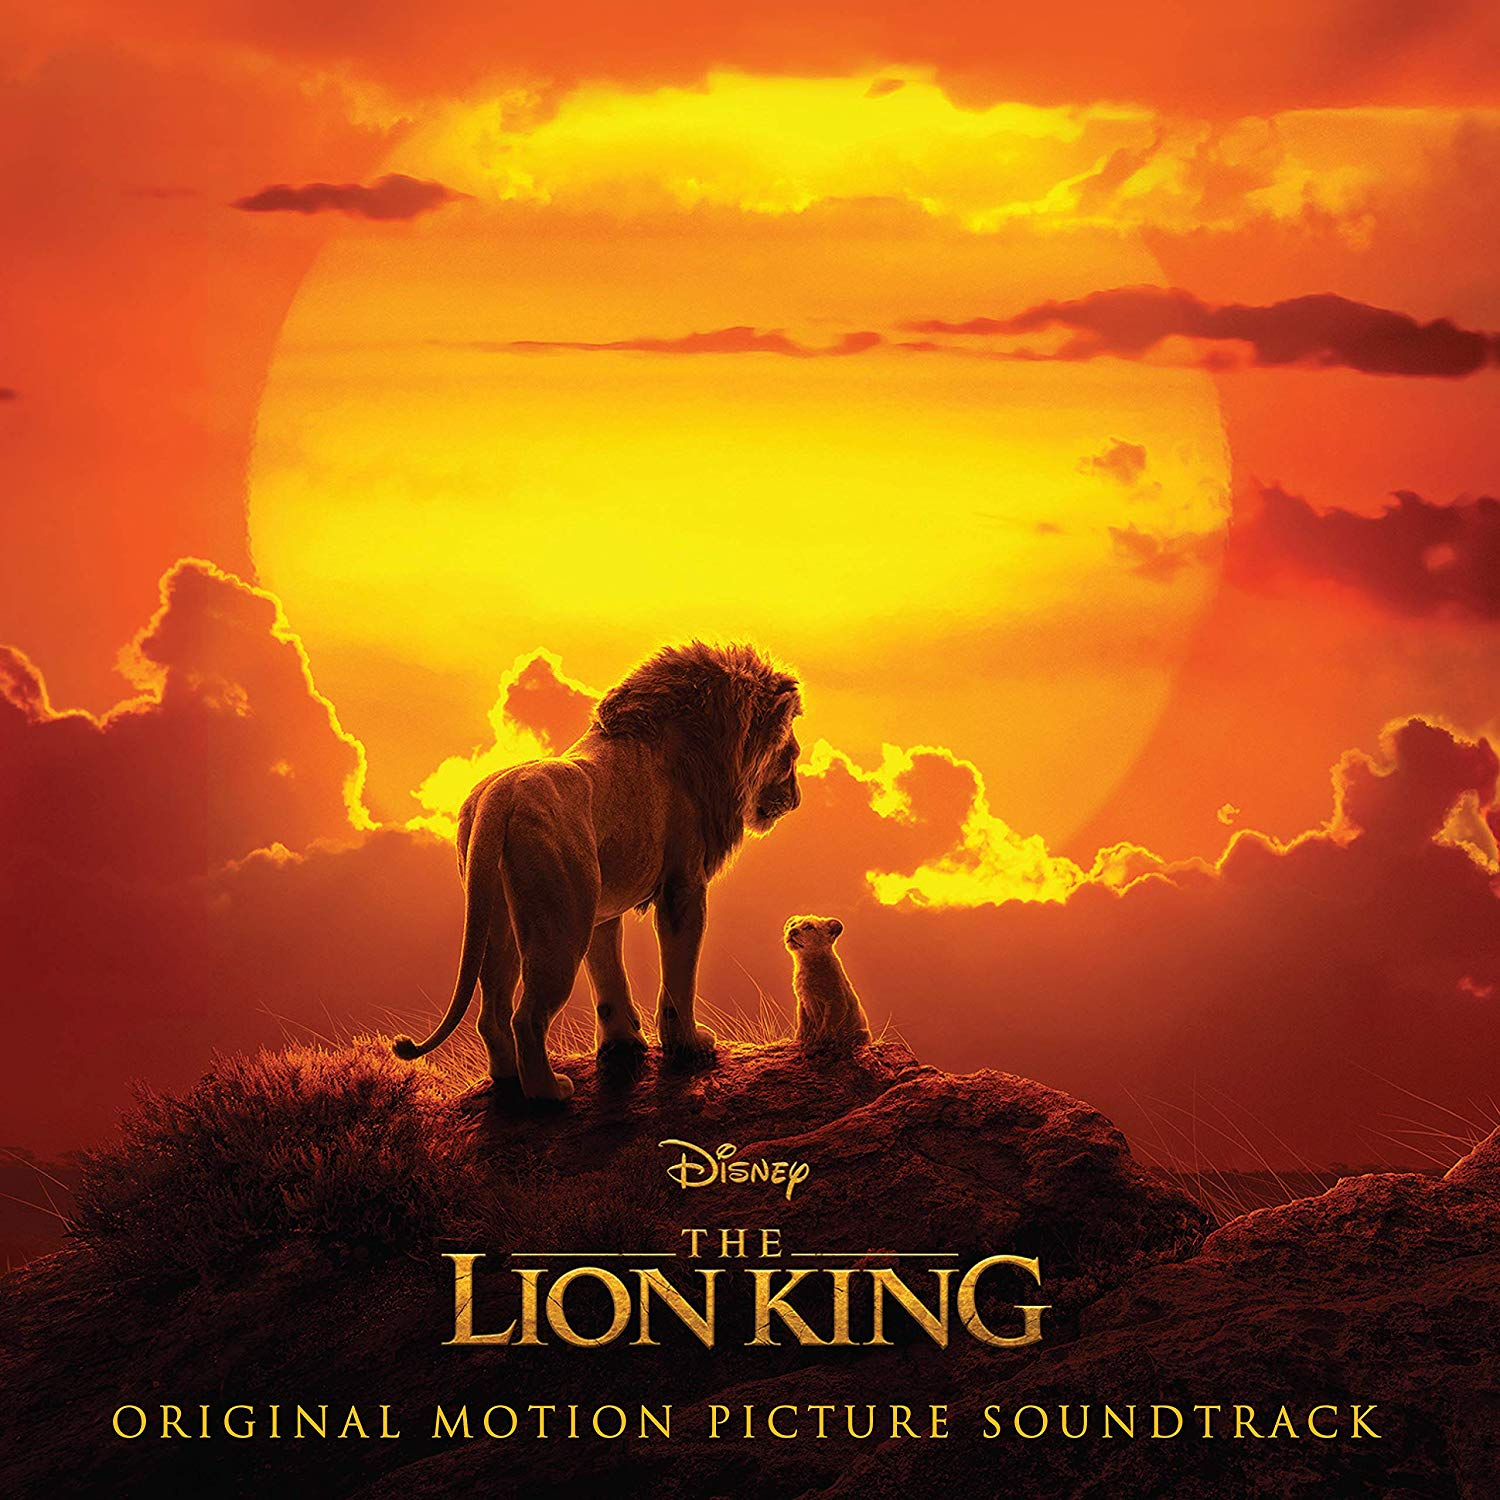 bande originale soundtrack ost score roi lion king film disney